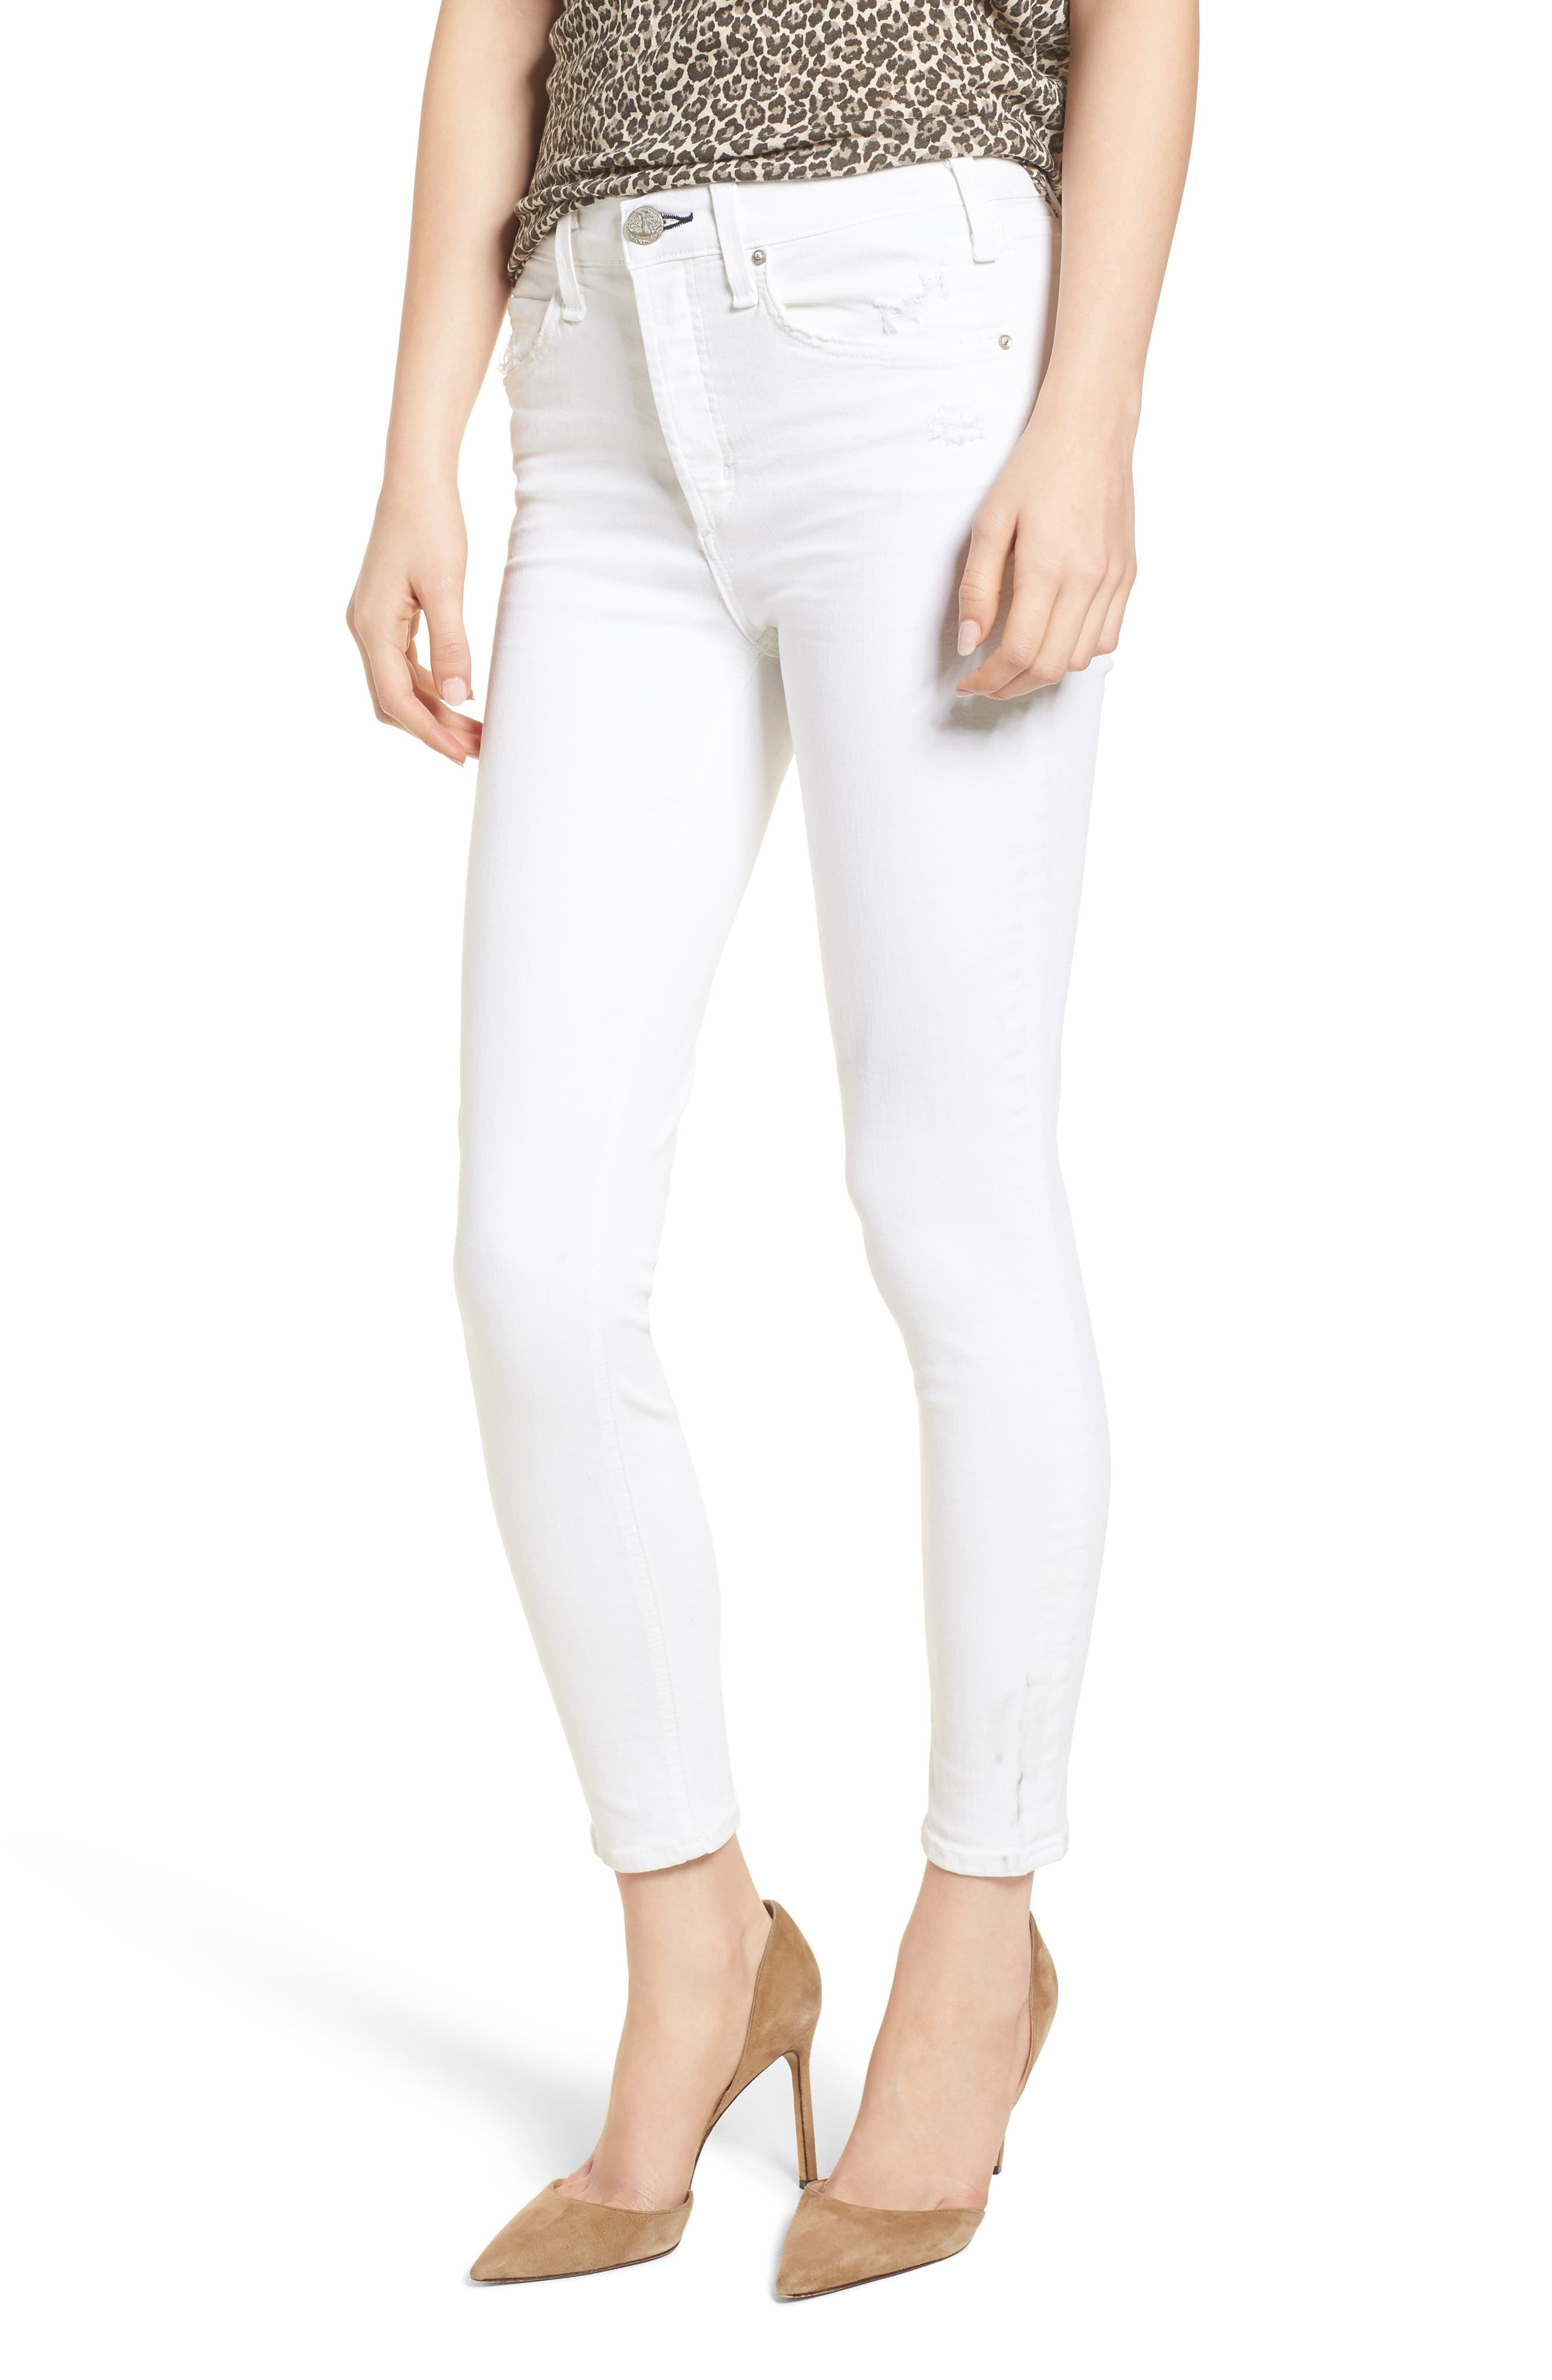 Newton Skinny Ankle Jeans,                             Main thumbnail 1, color,                             100